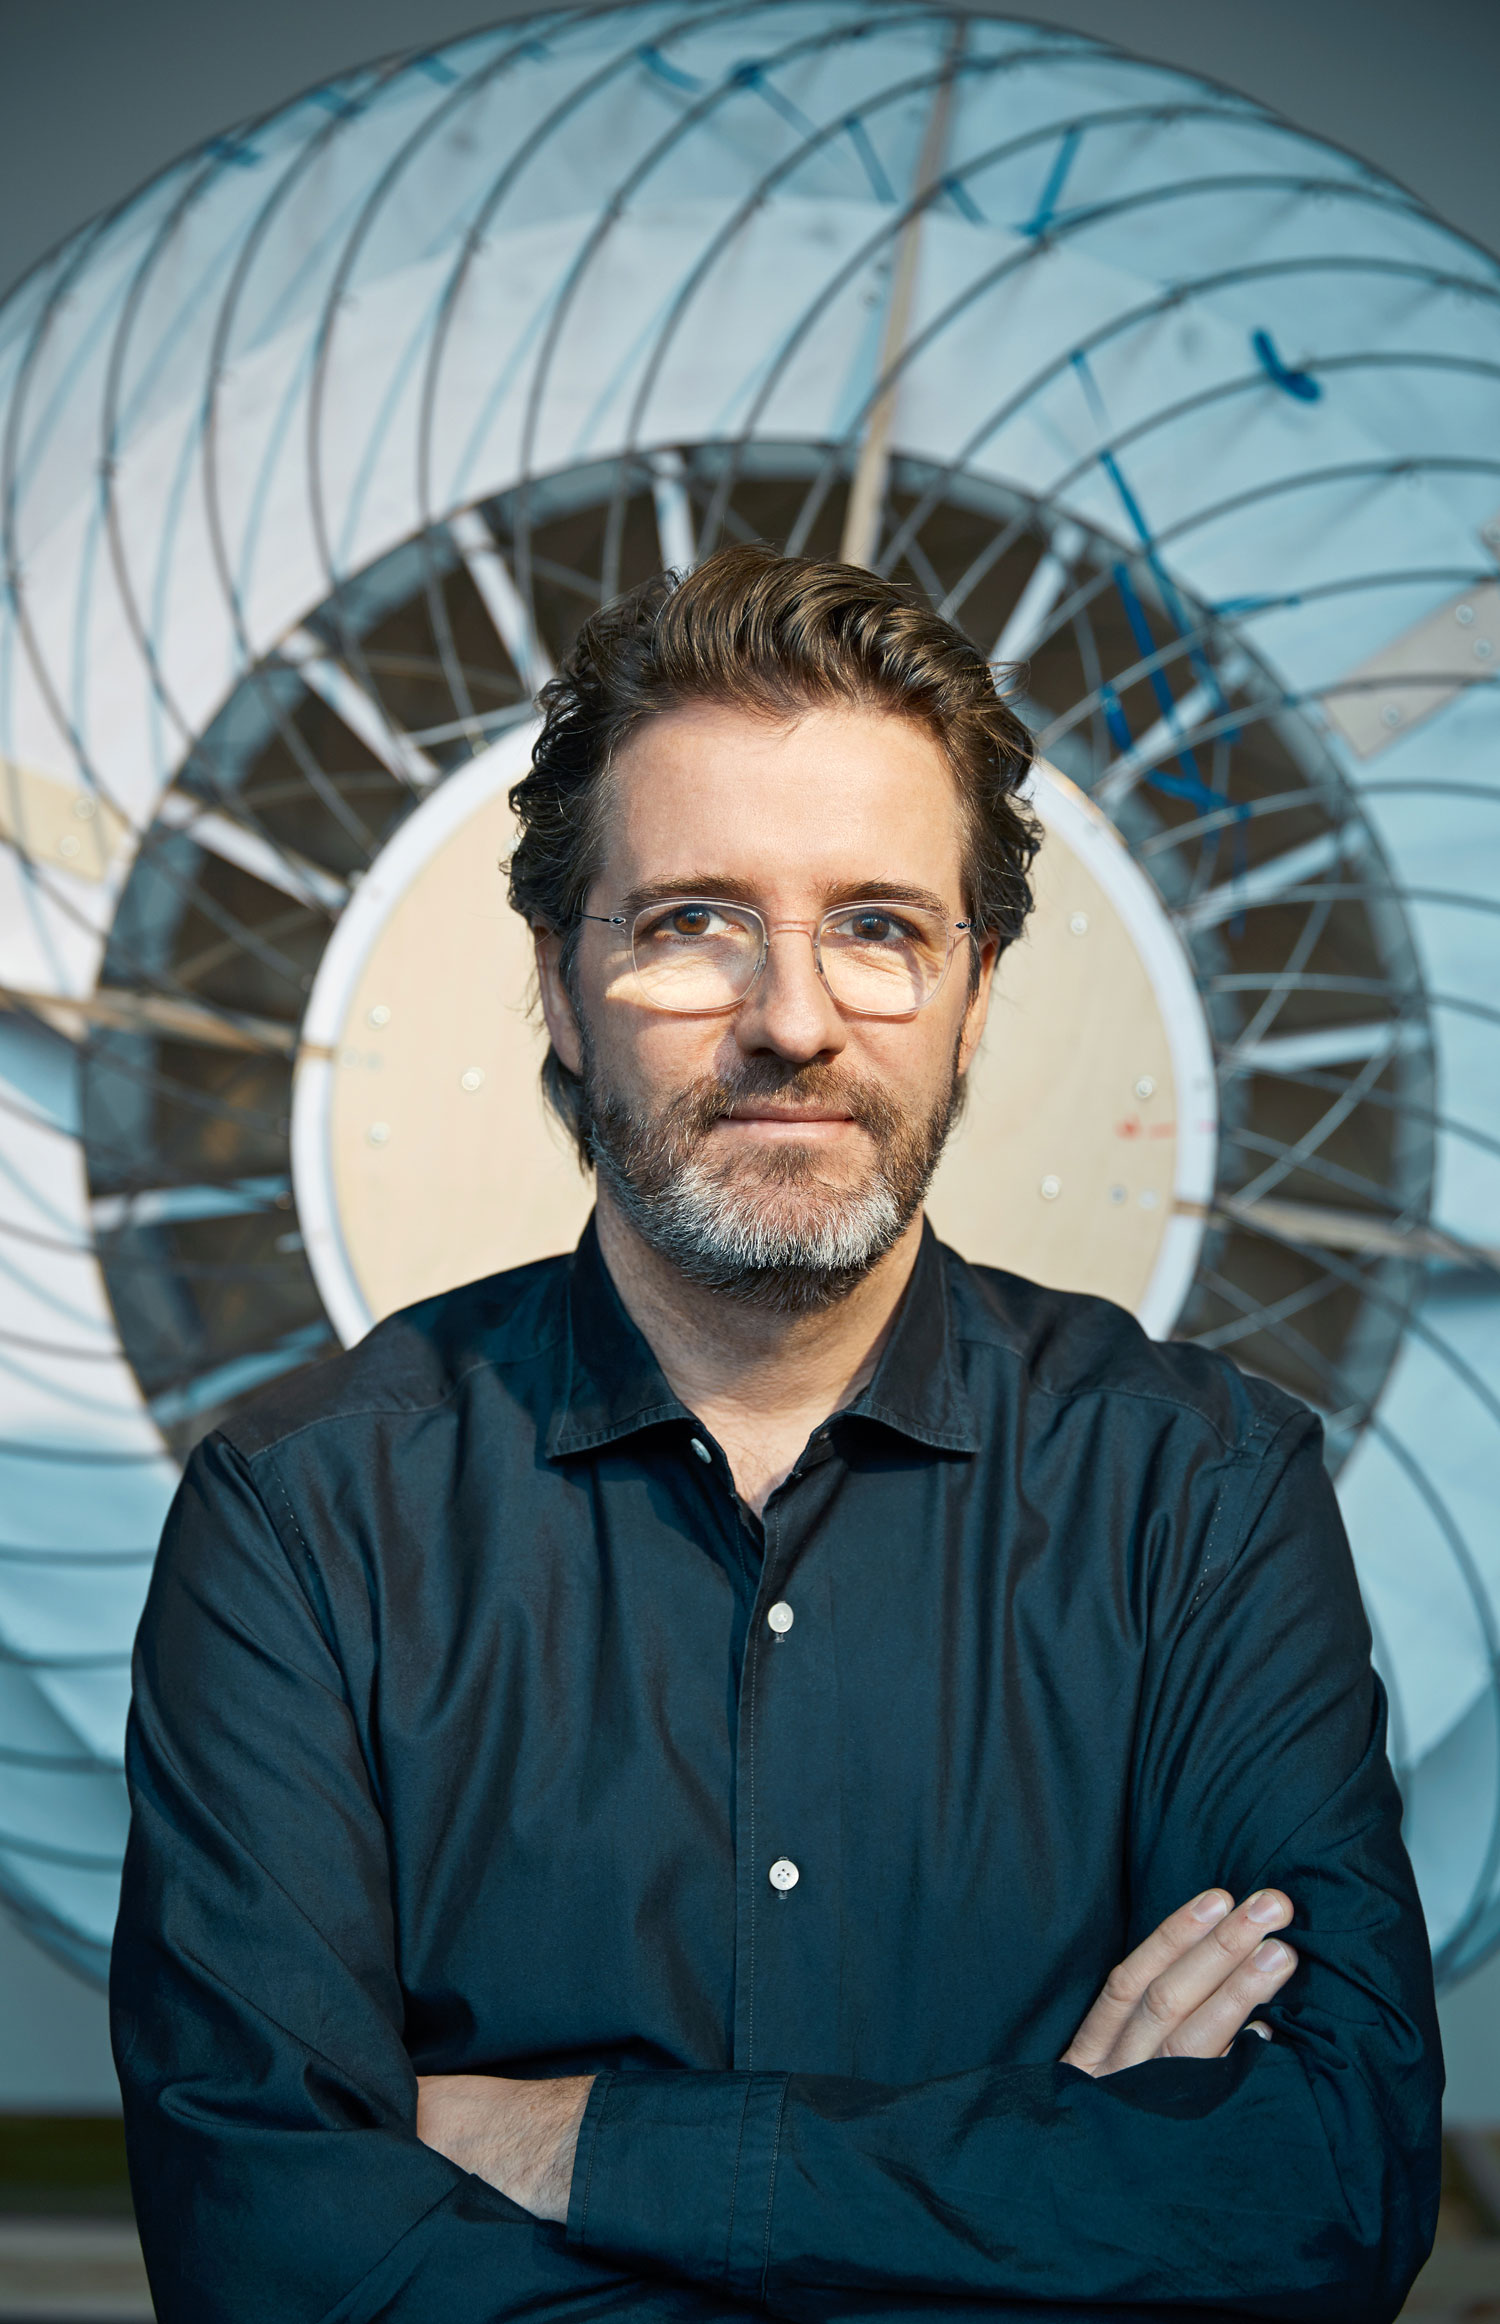 'An exhibition is like a small weather system' - Olafur Eliasson on art, audience and the Experience of putting on a show